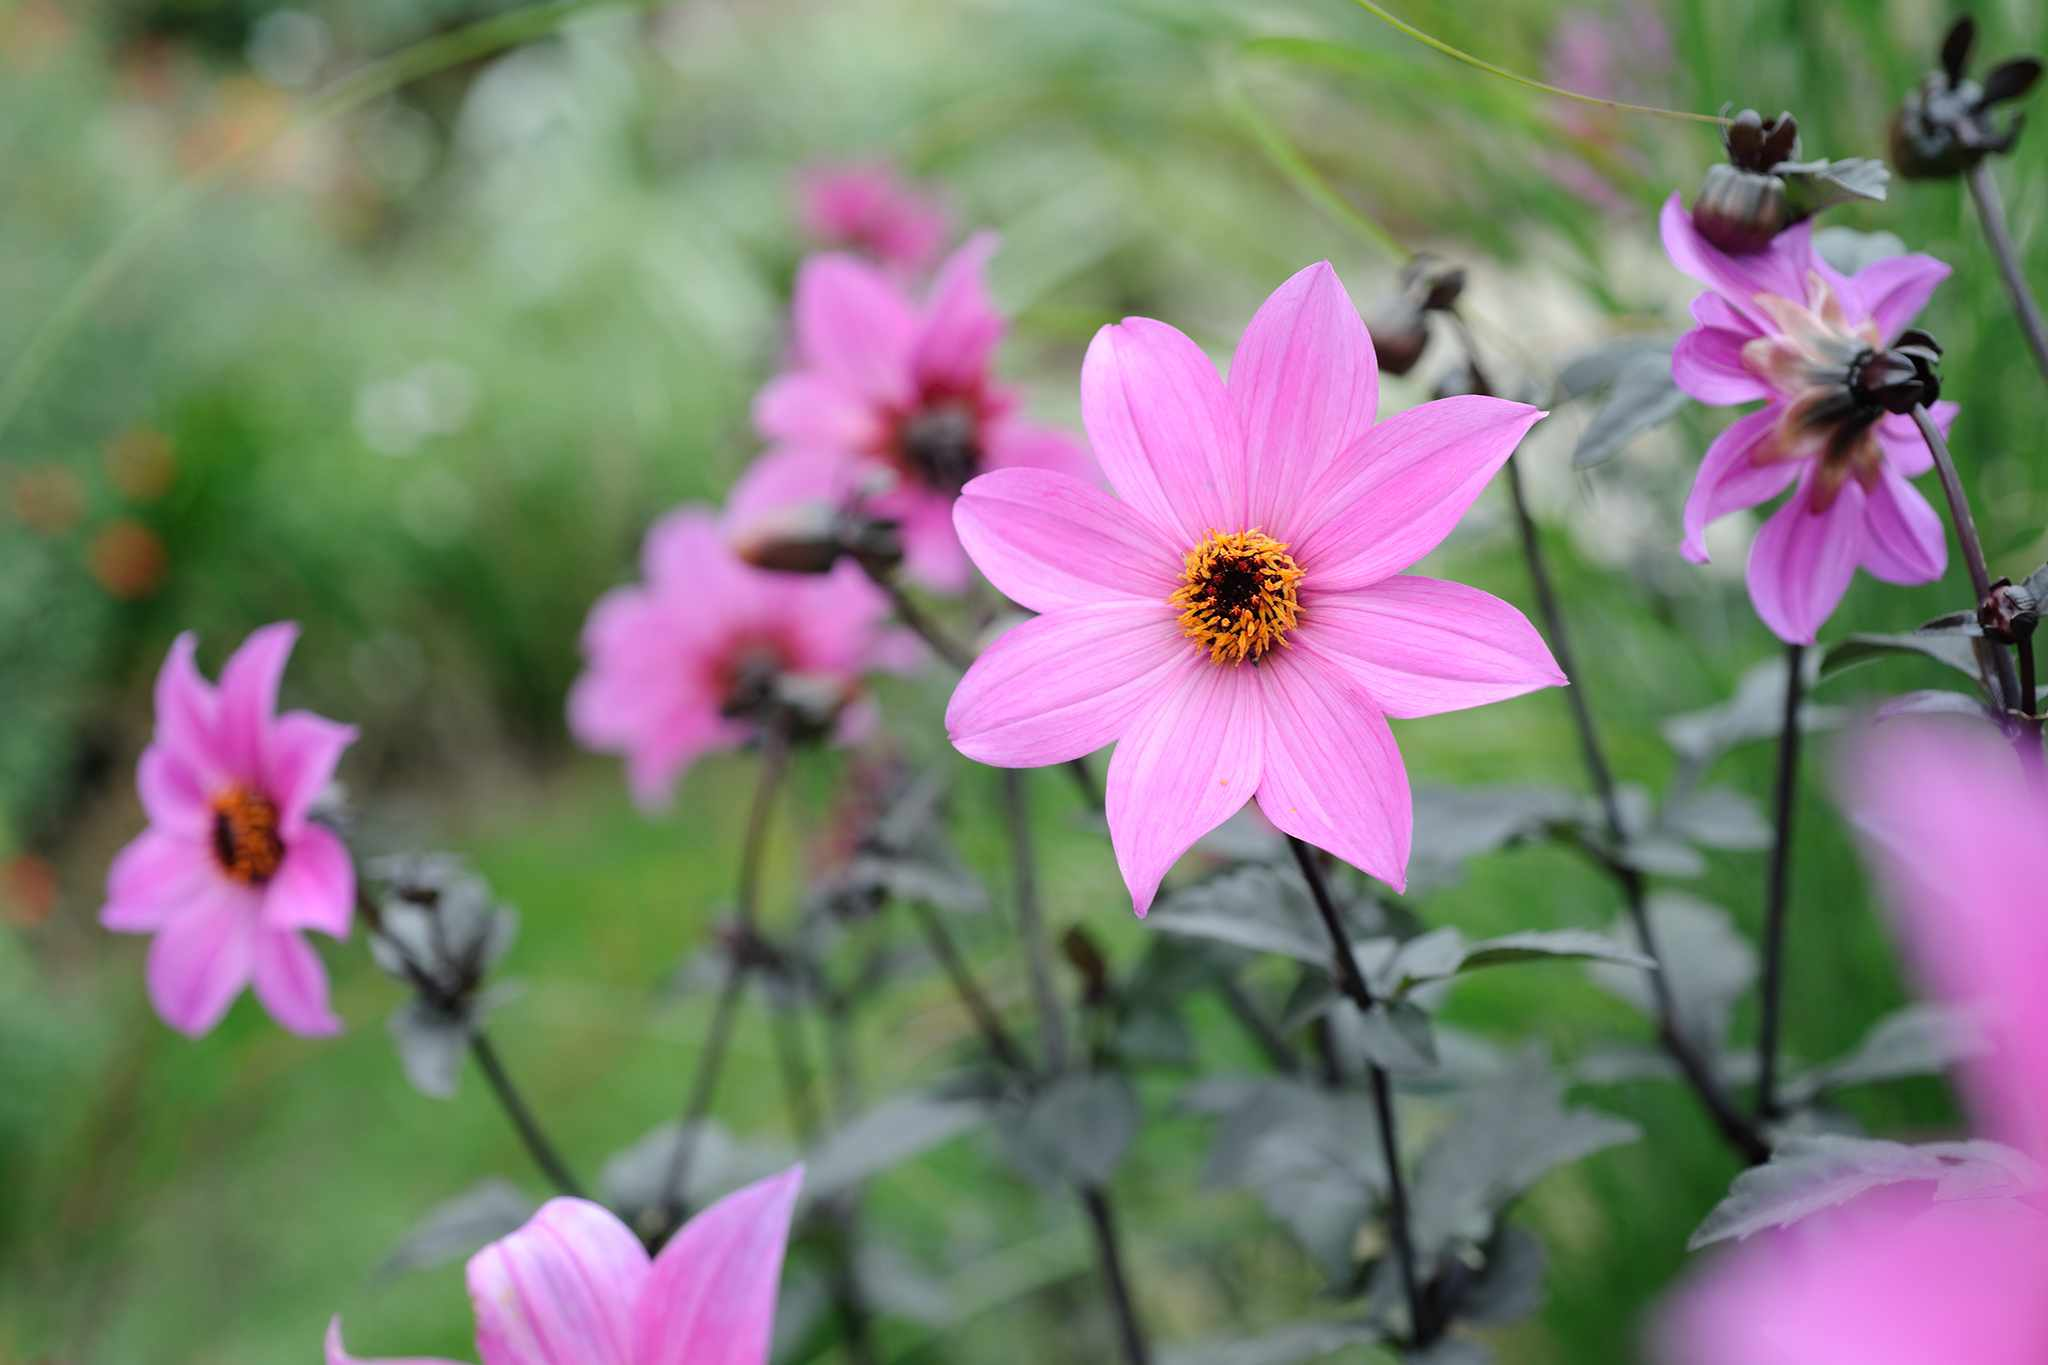 PInk-flowered dahlias - Dahlia 'Magenta Star'